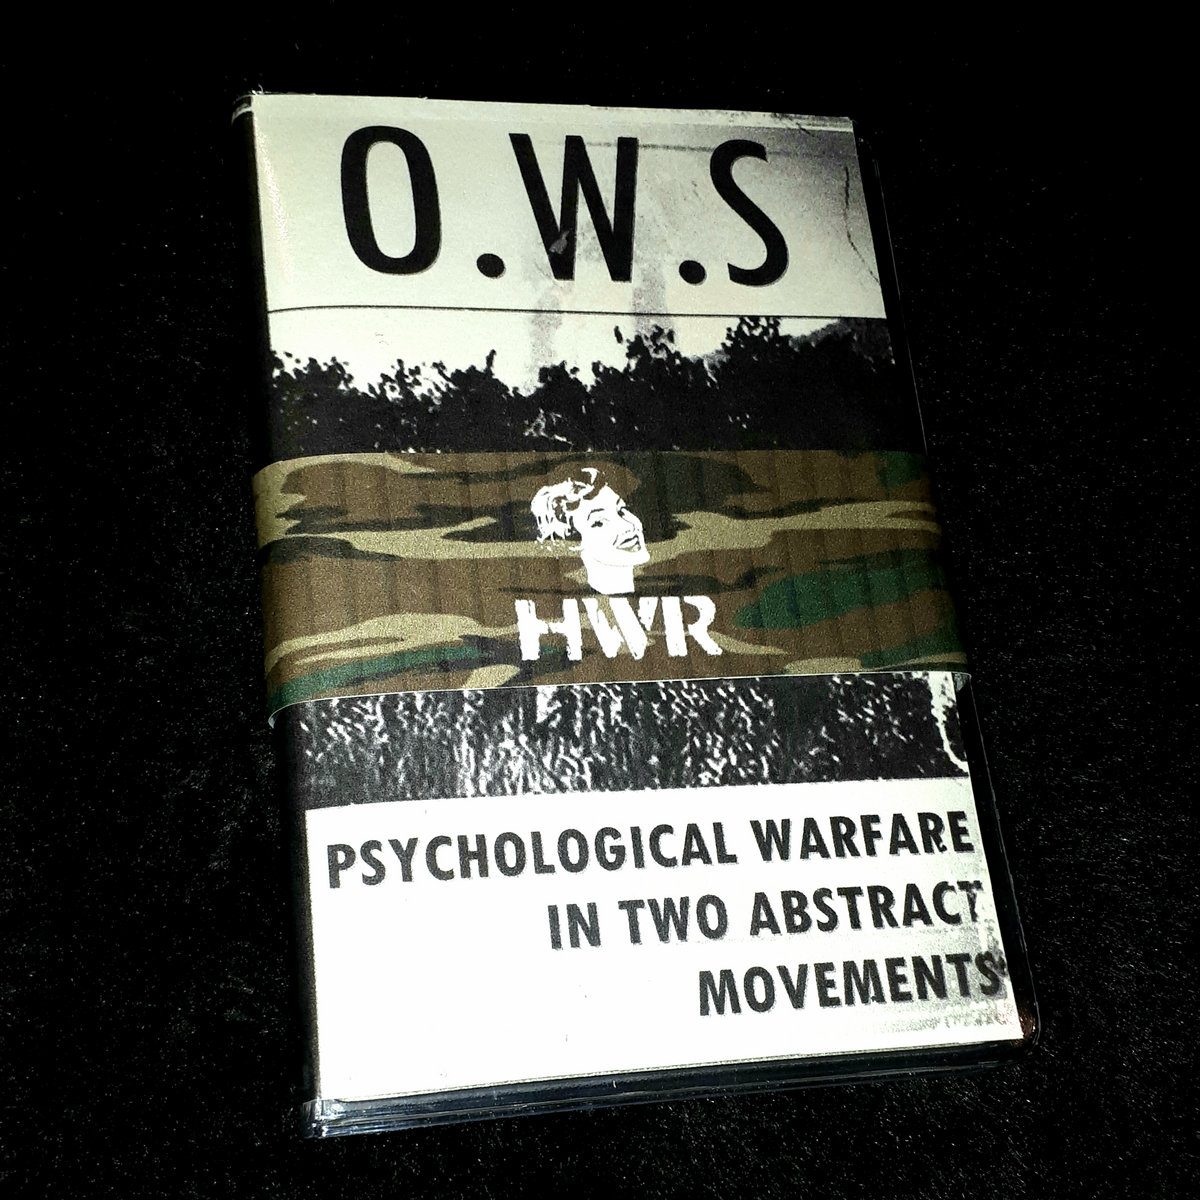 Psychological Warfare 1994 Jeep Cherokee Zj 52l Fuse Box Diagram Array O W S In Two Abstract Movements Hwr006 Rh Housewiferecords Bandcamp Com